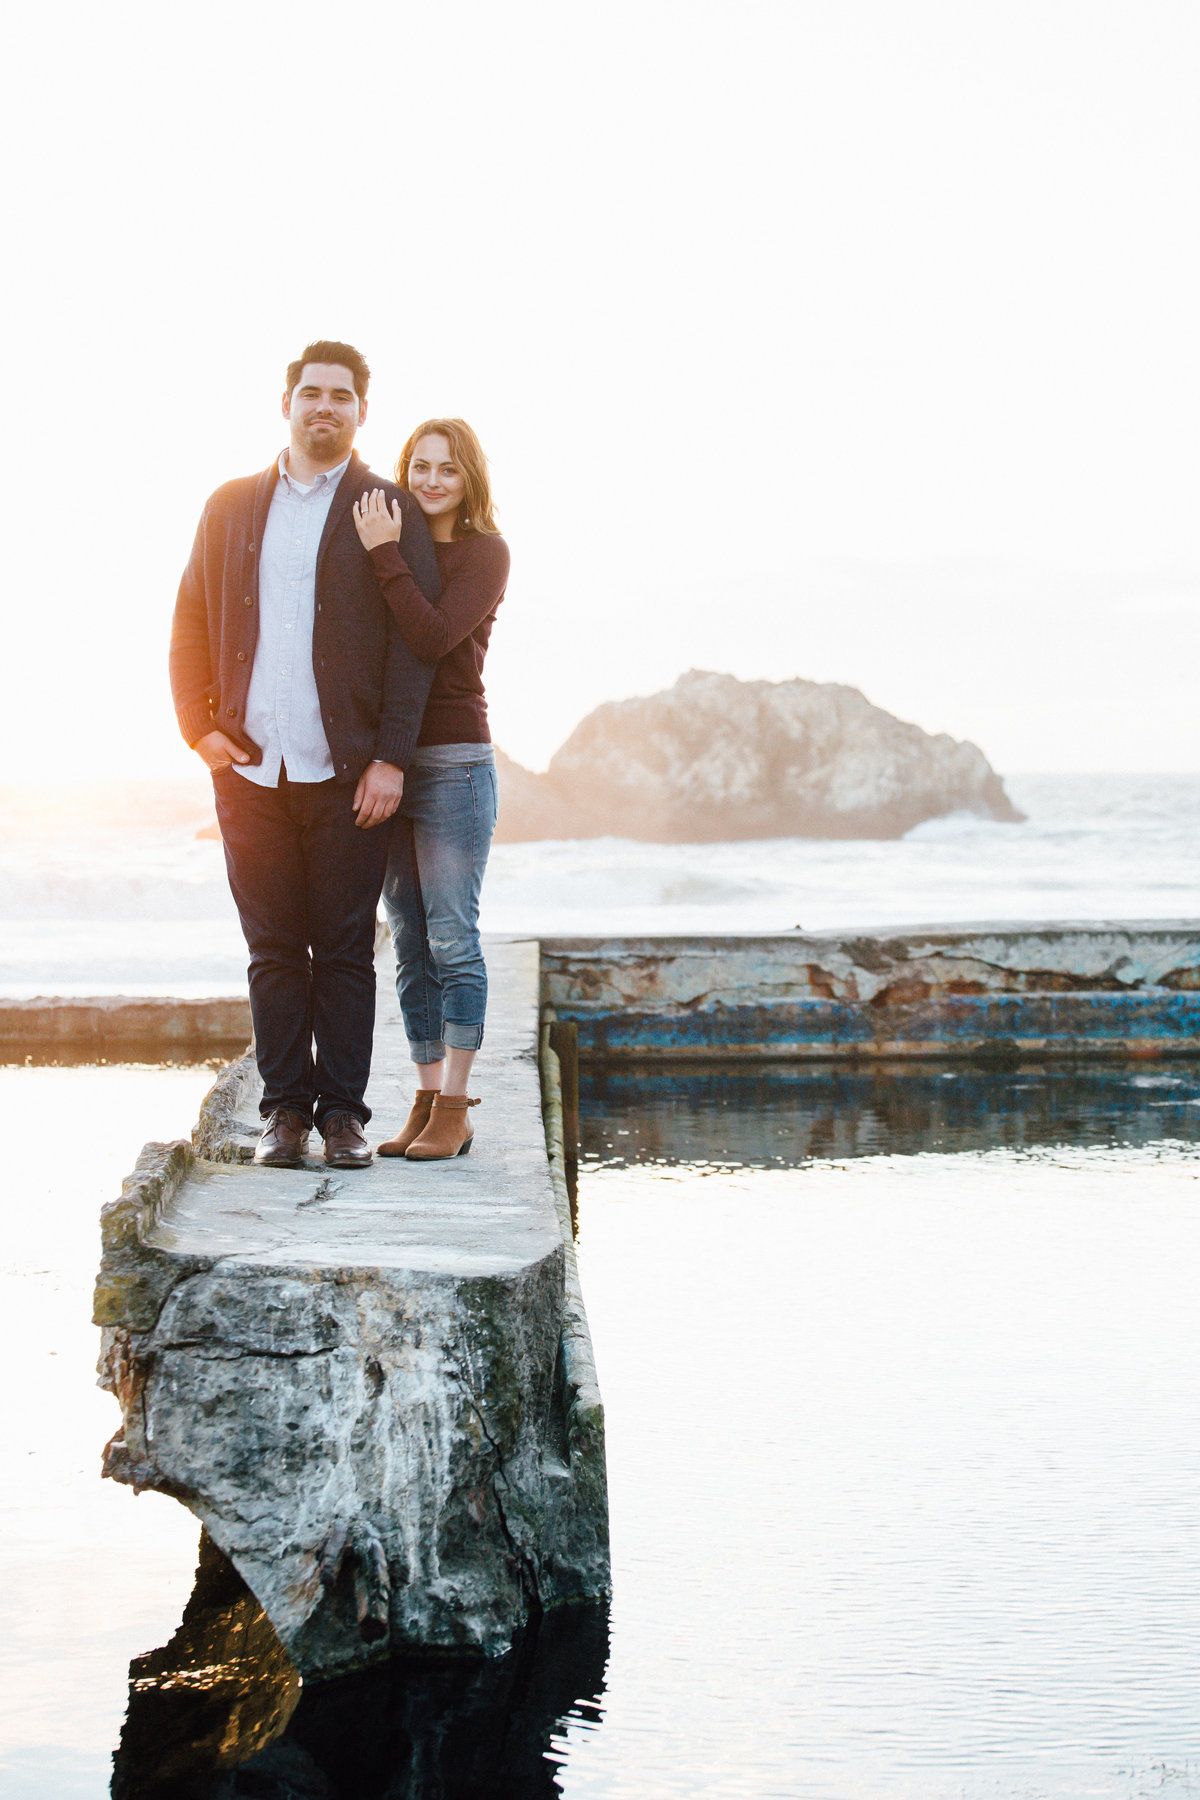 Sutro-Baths-Engagement-Photos-San-Francisco-Los-Angeles-Halley-Lutz-Creative-Portraits